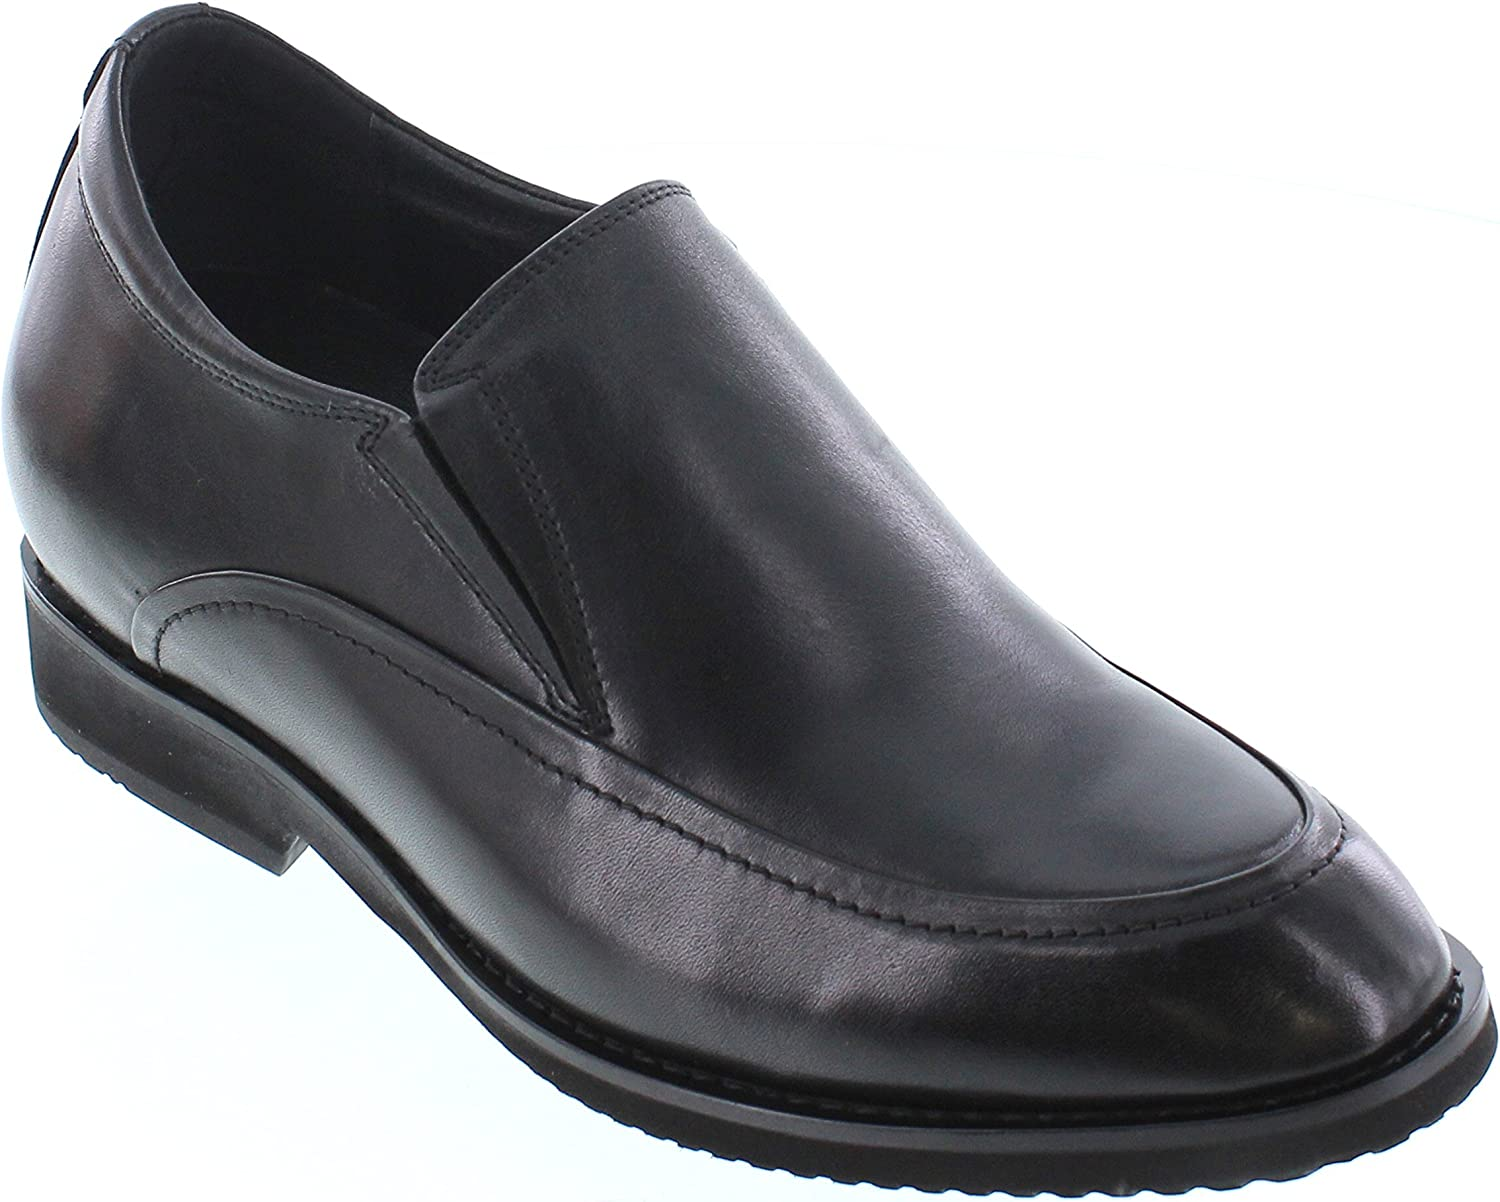 CALTO Men's Invisible Height Increasing Elevator shoes - Black Premium Leather Slip-on Dress Style Formal Loafers - 2.8 Inches Taller - T2206